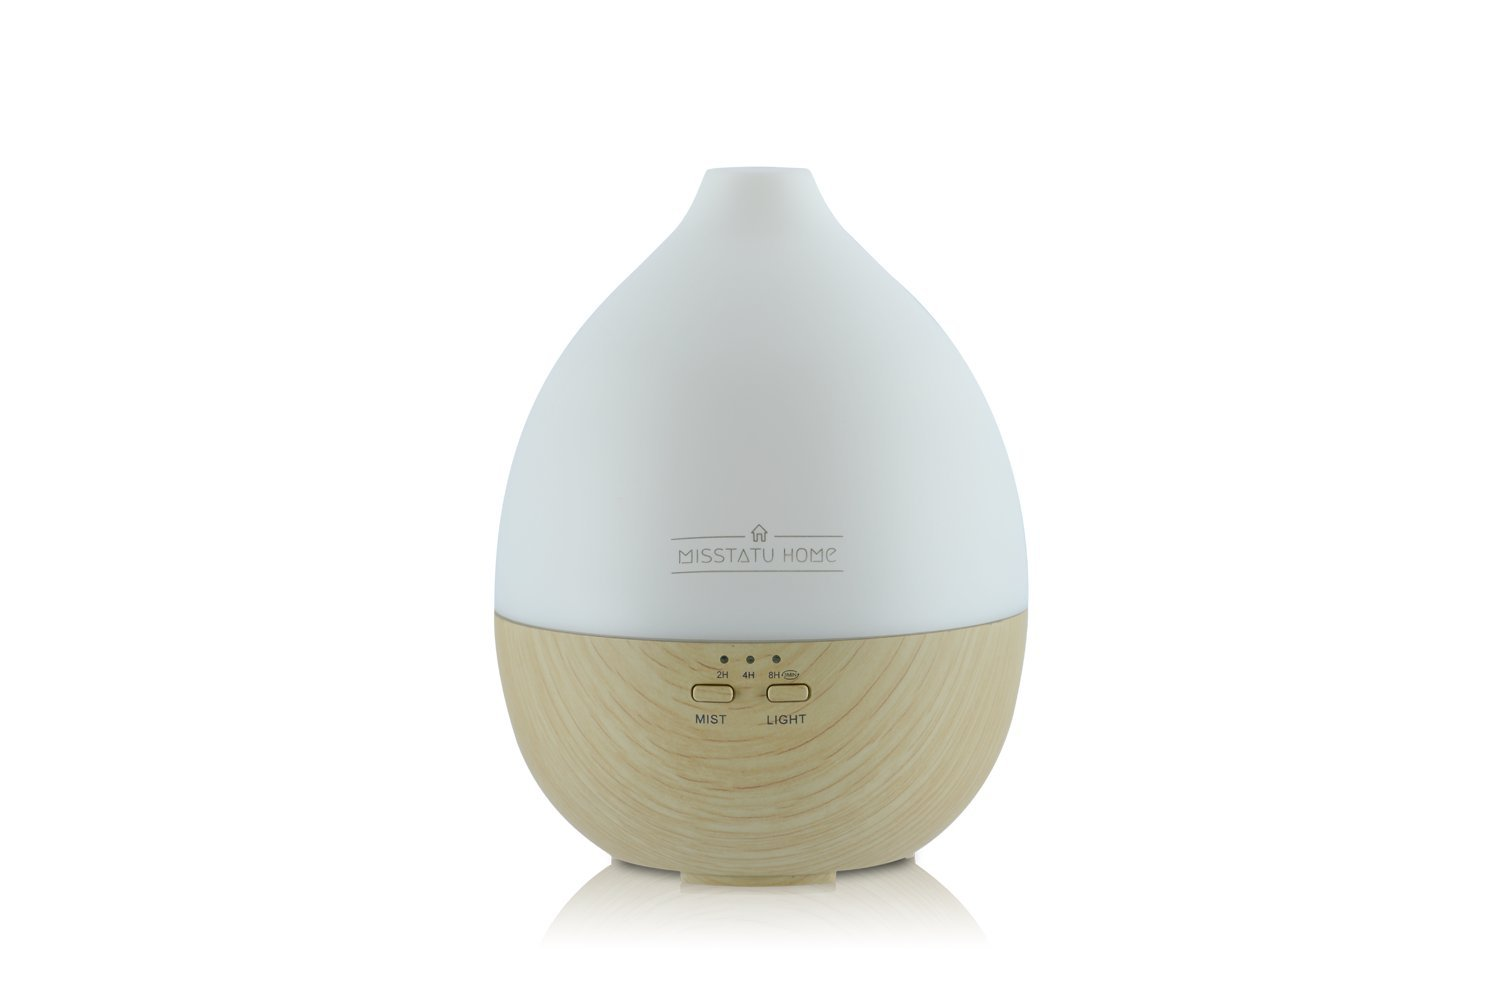 Aromatherapy diffuser and humidifier. Cool Mist Humidifier Ultrasonic Aroma Essential Oil Diffuser for home, spa, living room, bedroom. Adjustable Mist Modes, Waterless Auto Shut-off, Color LED Lights